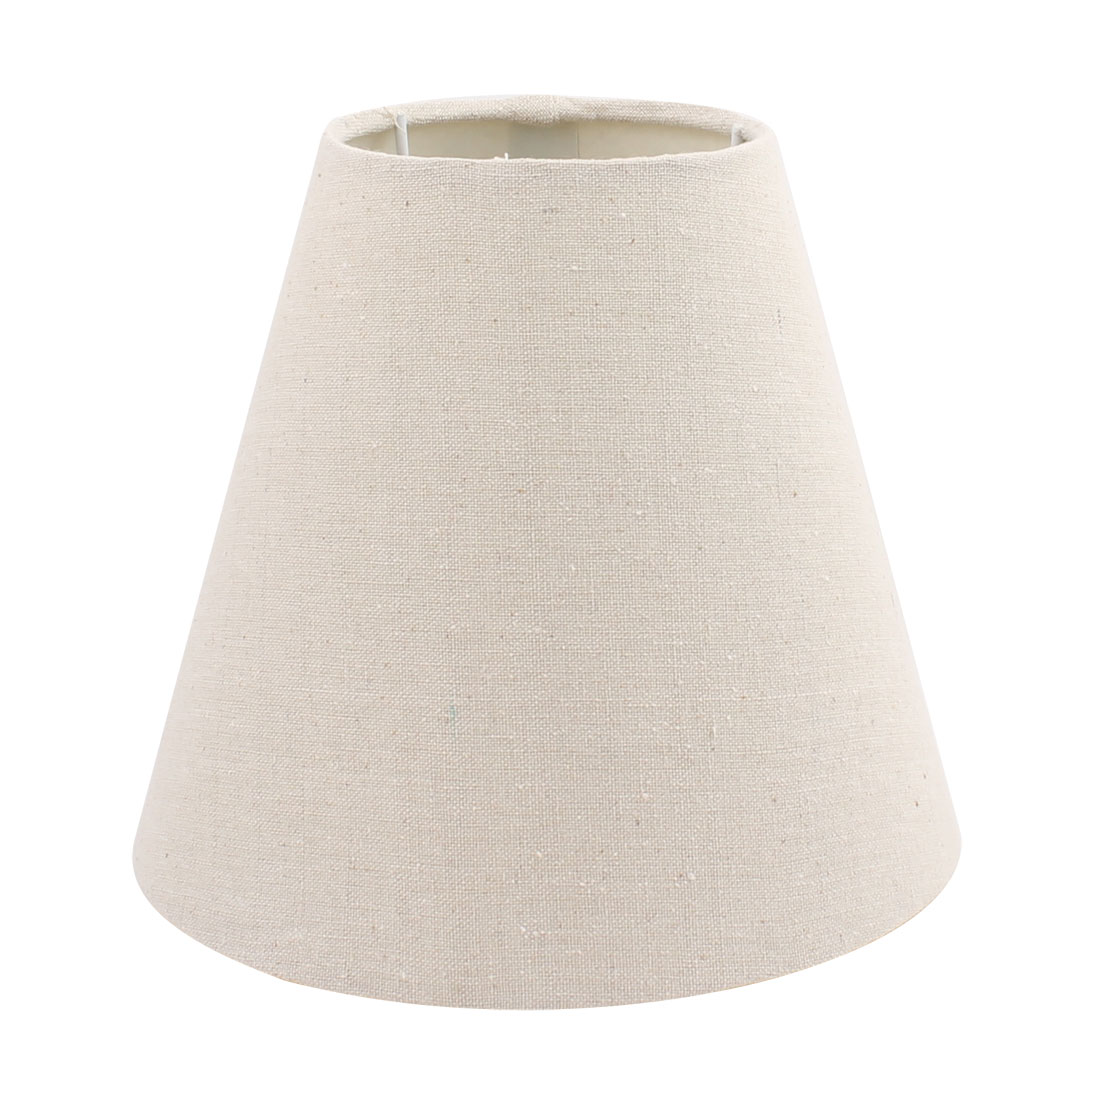 110mmx200mmx170mm Grey Shell Lamp Cover for Home Office Student Reading Lamp